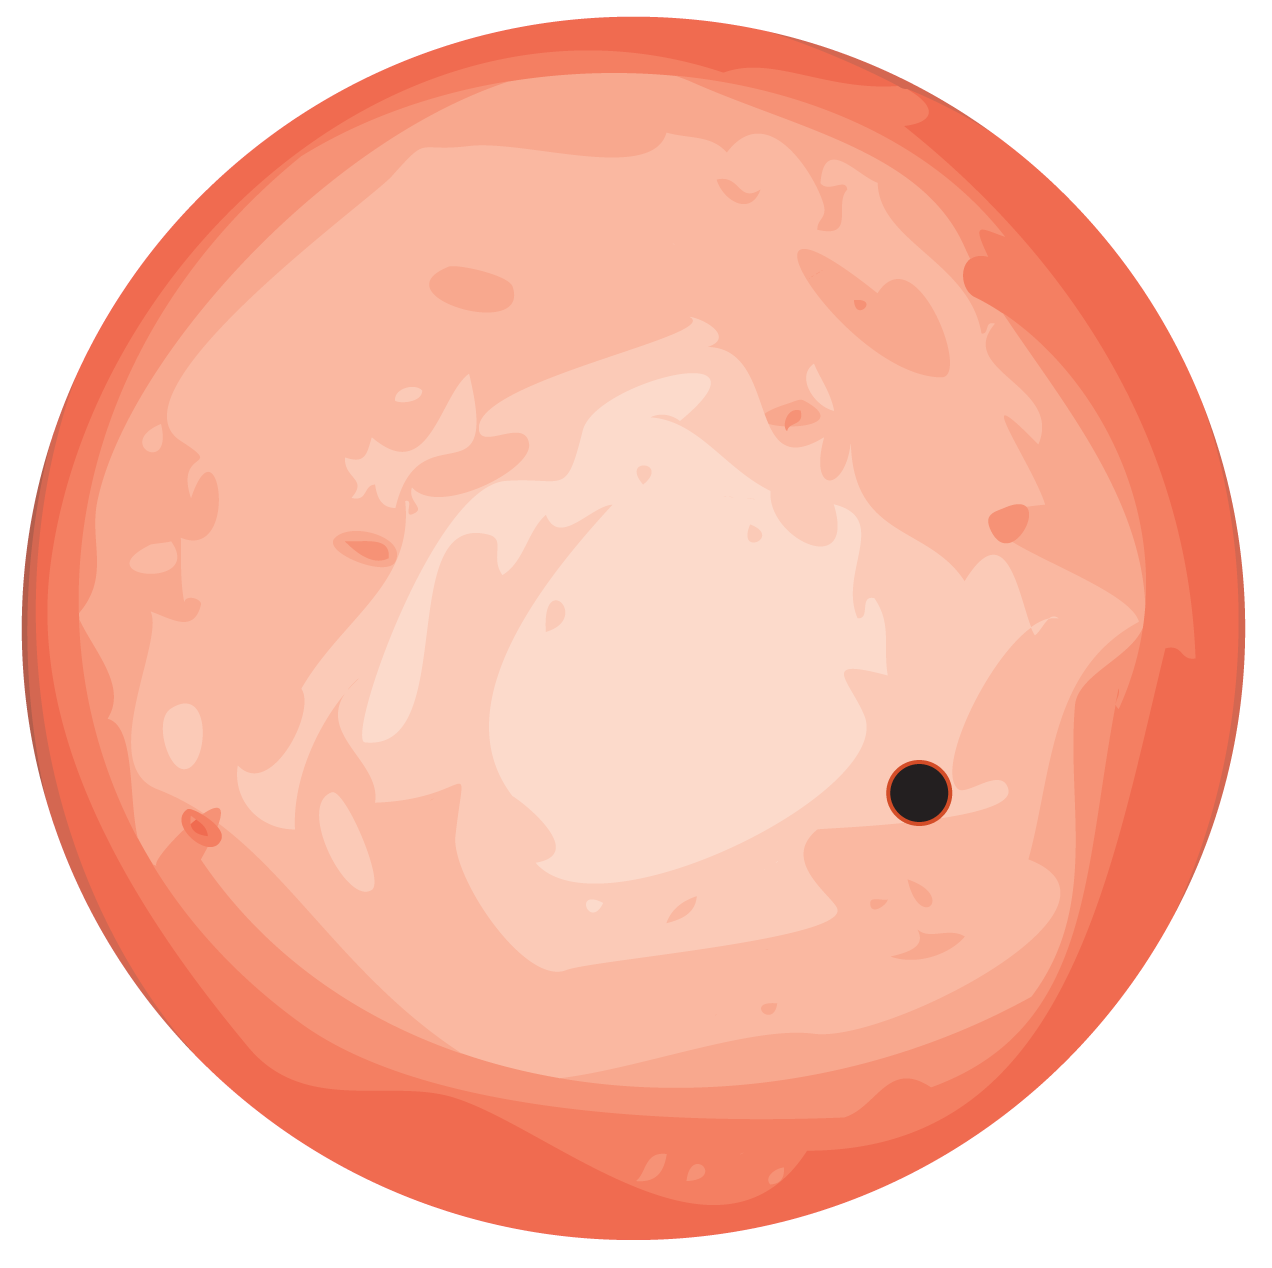 venus  twin  earth sized rocky planet orbiting a nearby star clip art door free clipart doors animated snow